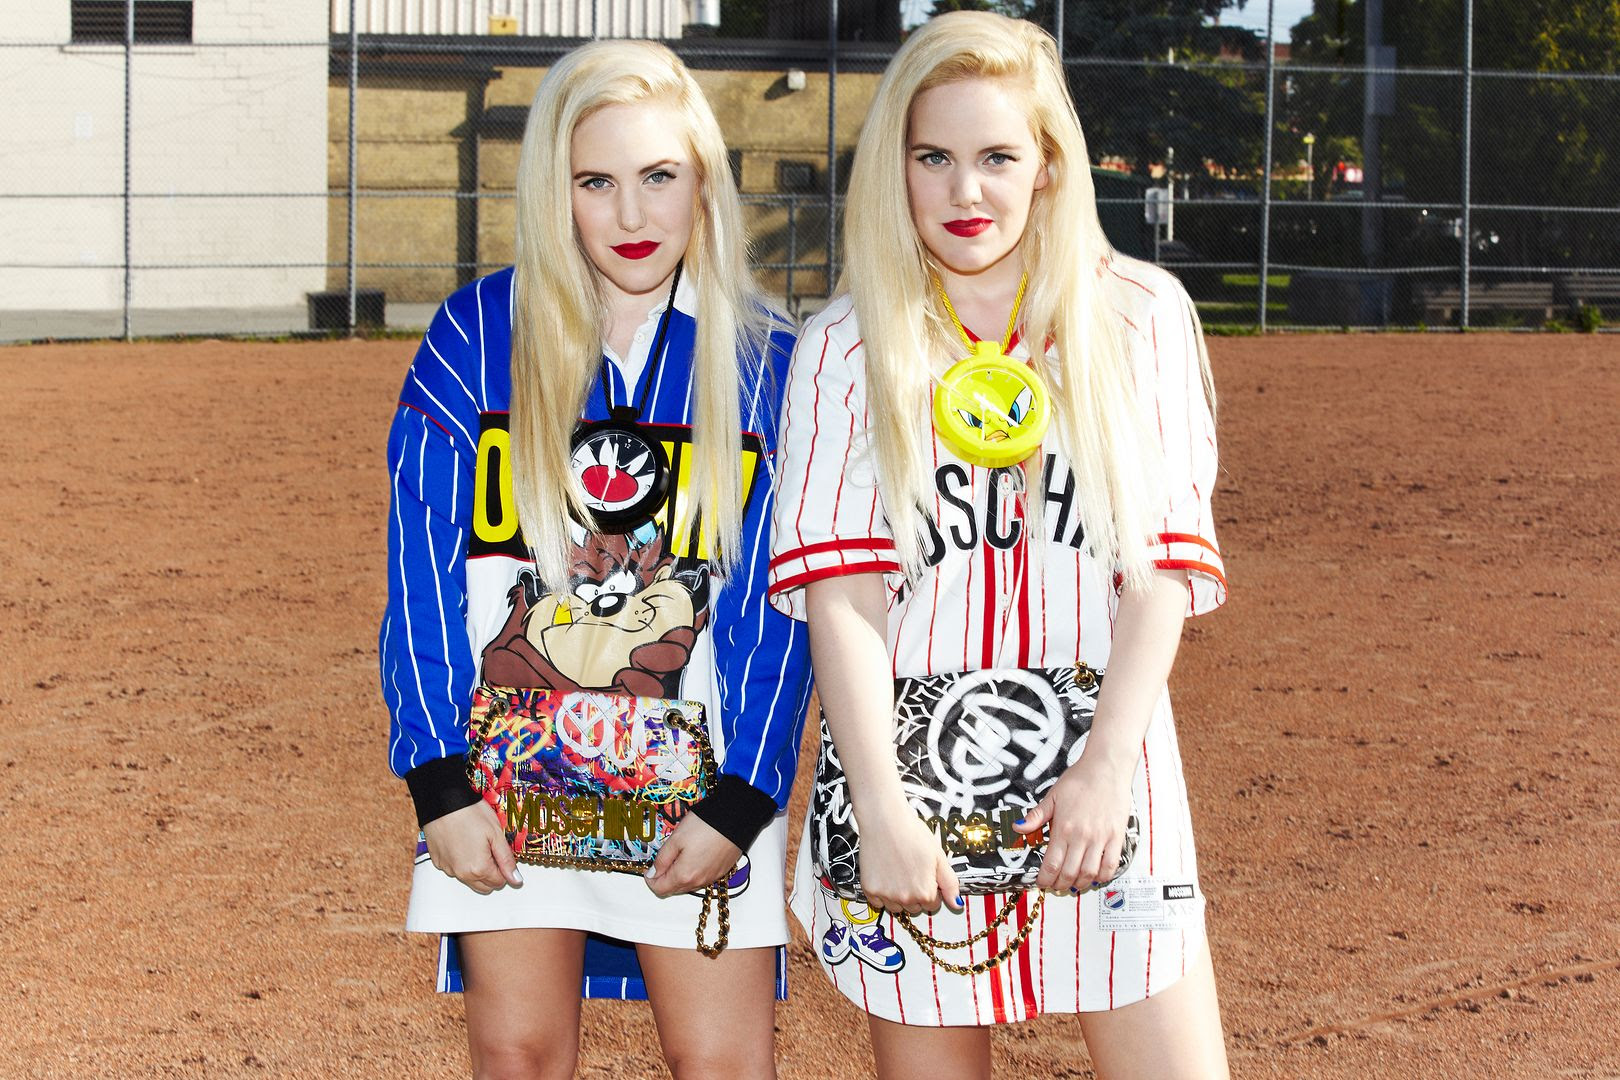 photo Moschino-Fall 15- Beckerman Blog- Cailli and Sam-Looney Tunes-Jeremy Scott- Vogue Japan-6_zpsxjwx5q9p.jpg